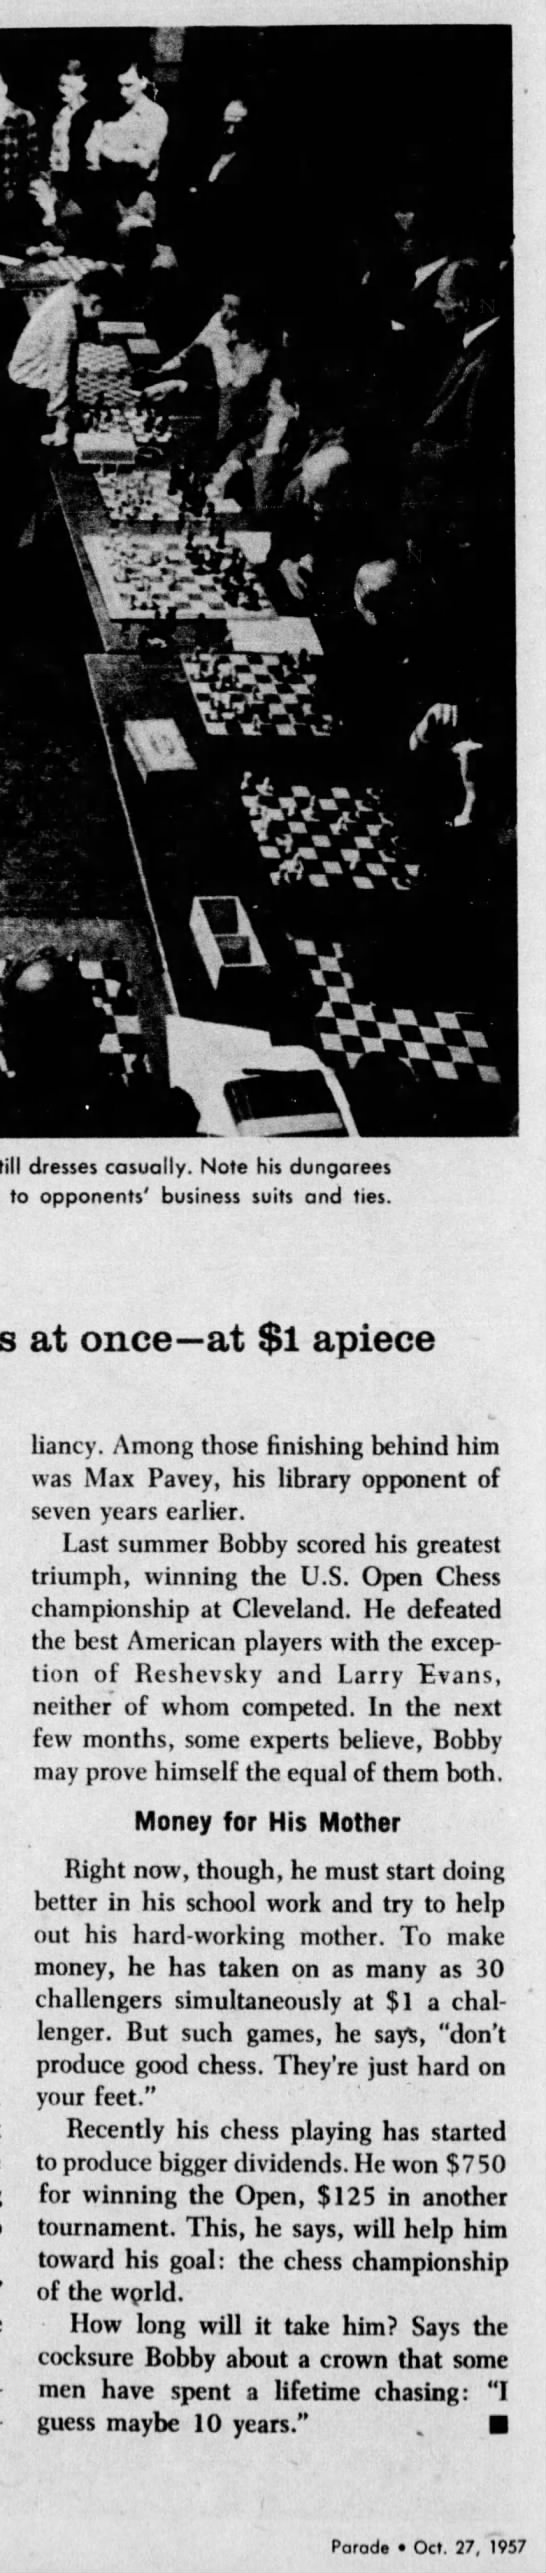 Only 14, he's a chess whiz (Column 6) -